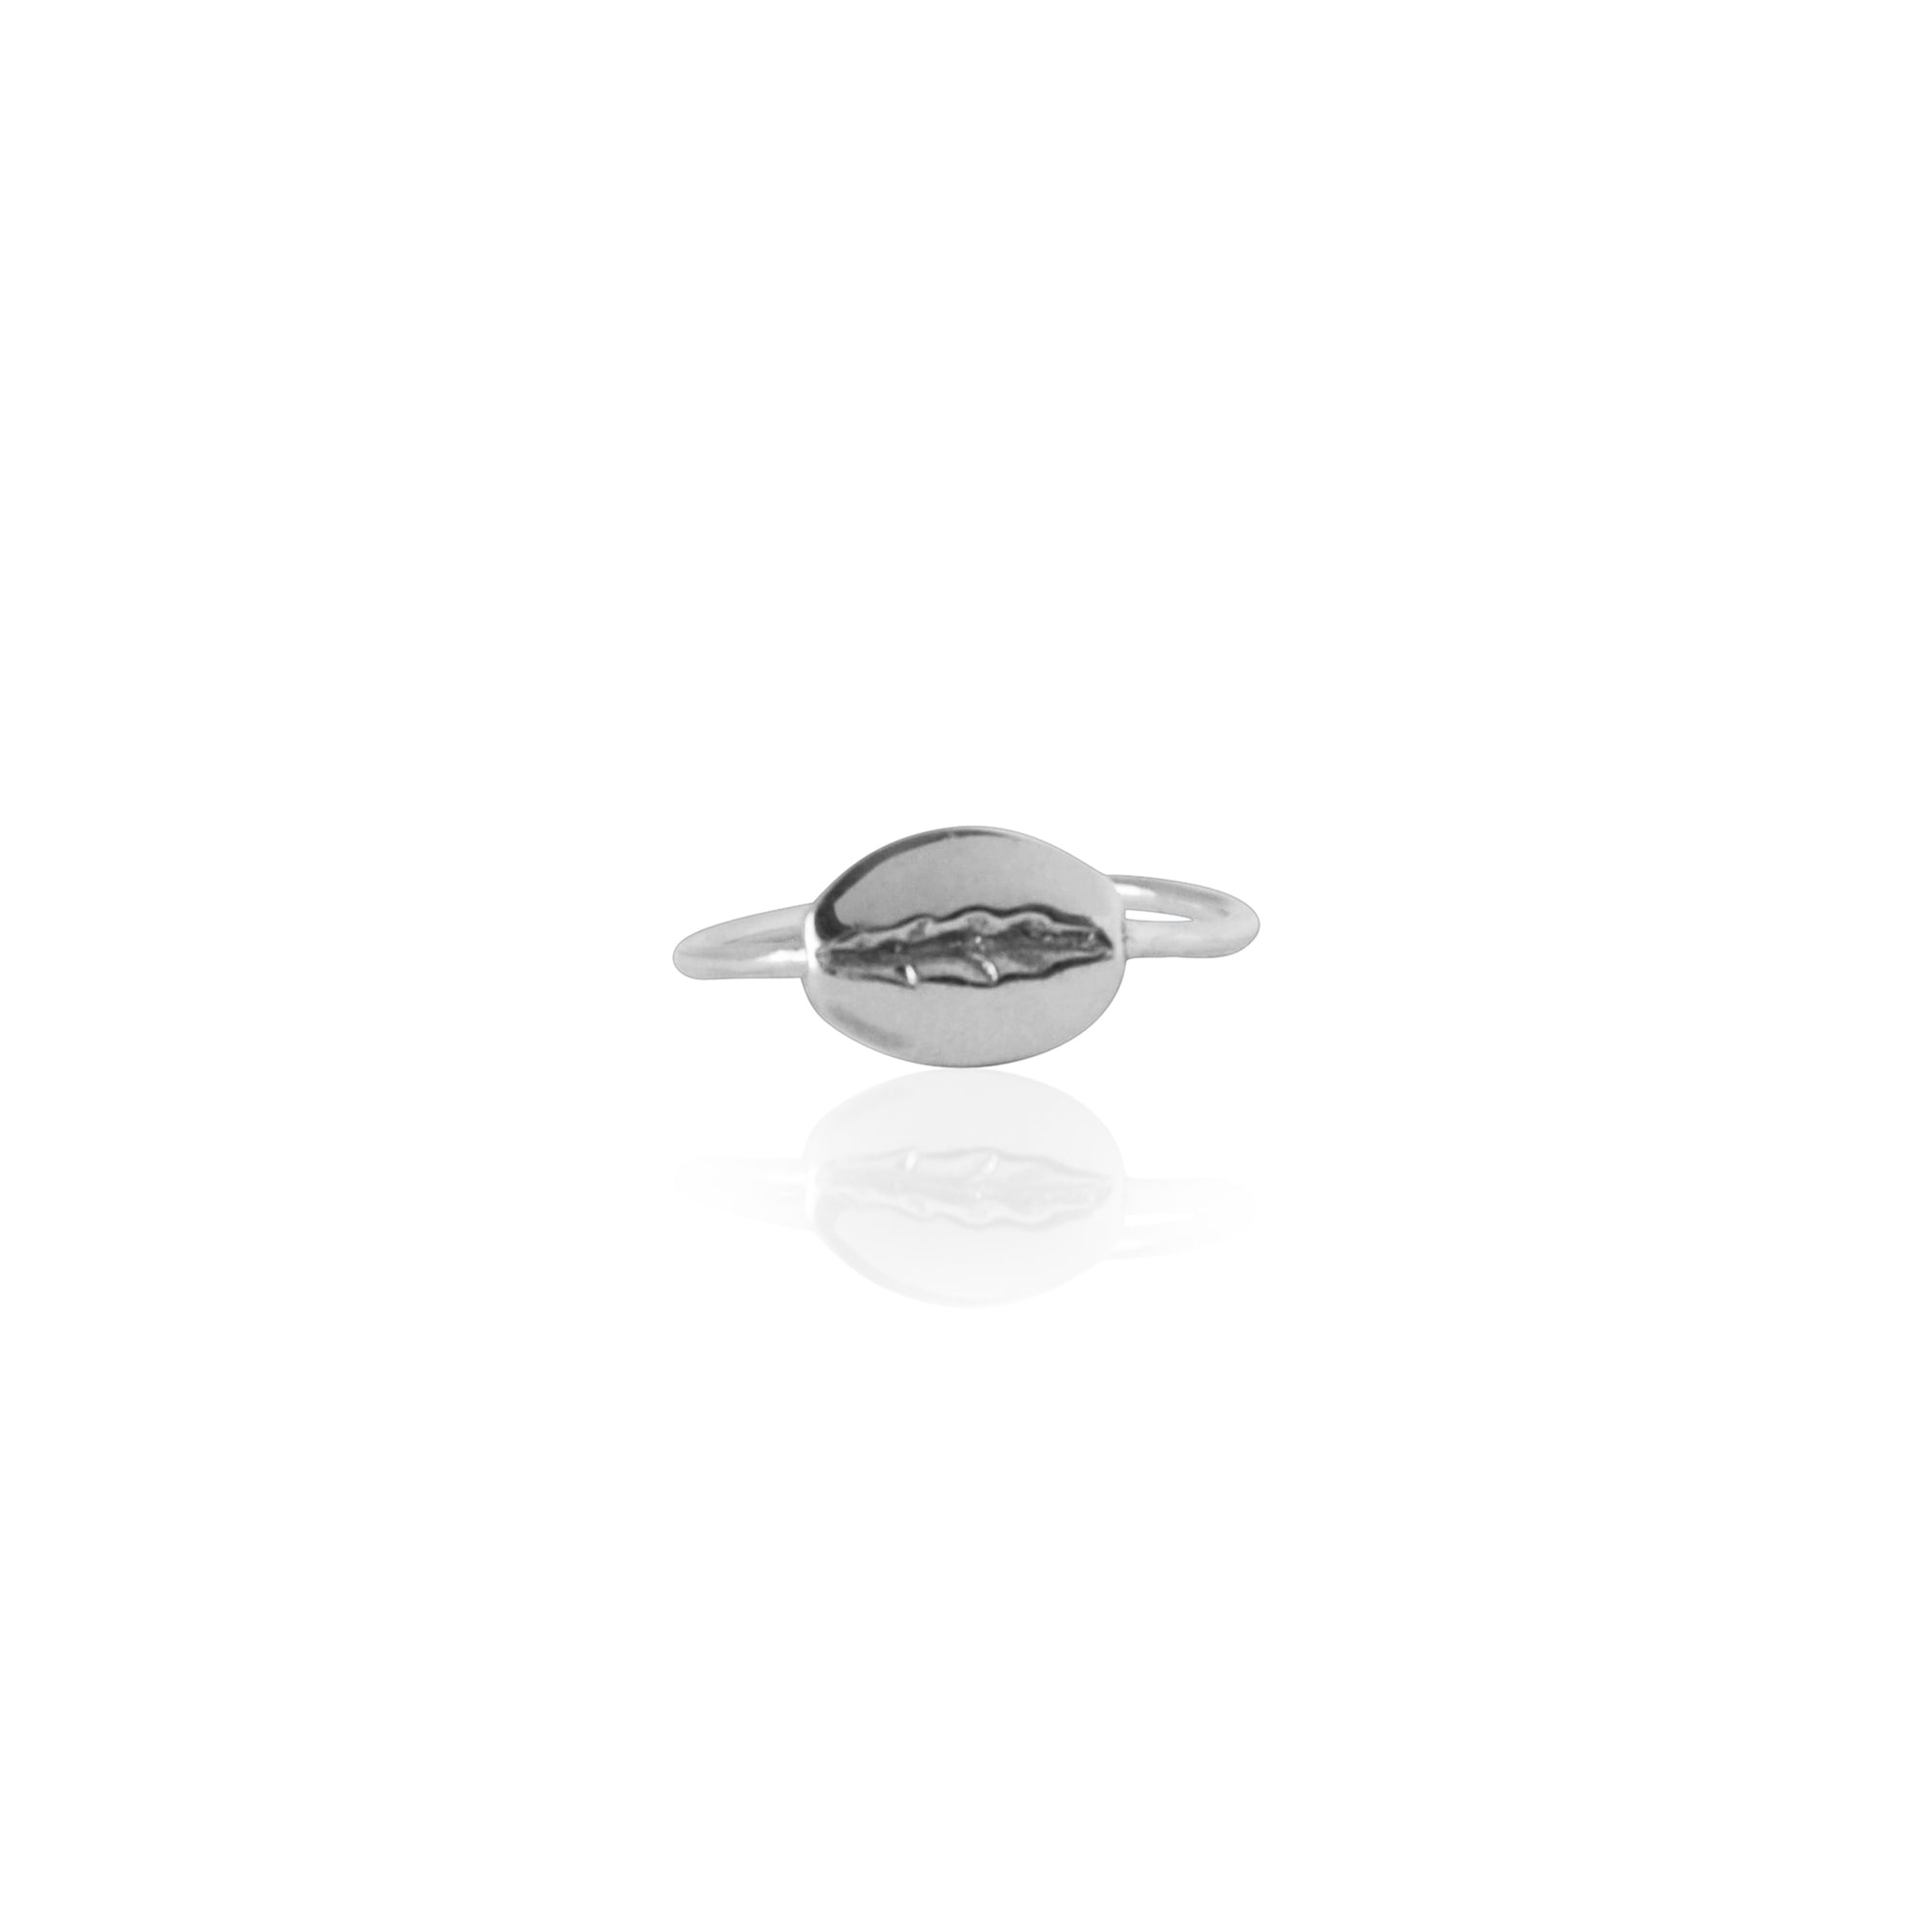 Coconut and Bliss x La Luna Rose Kintamani Ring - SILVER